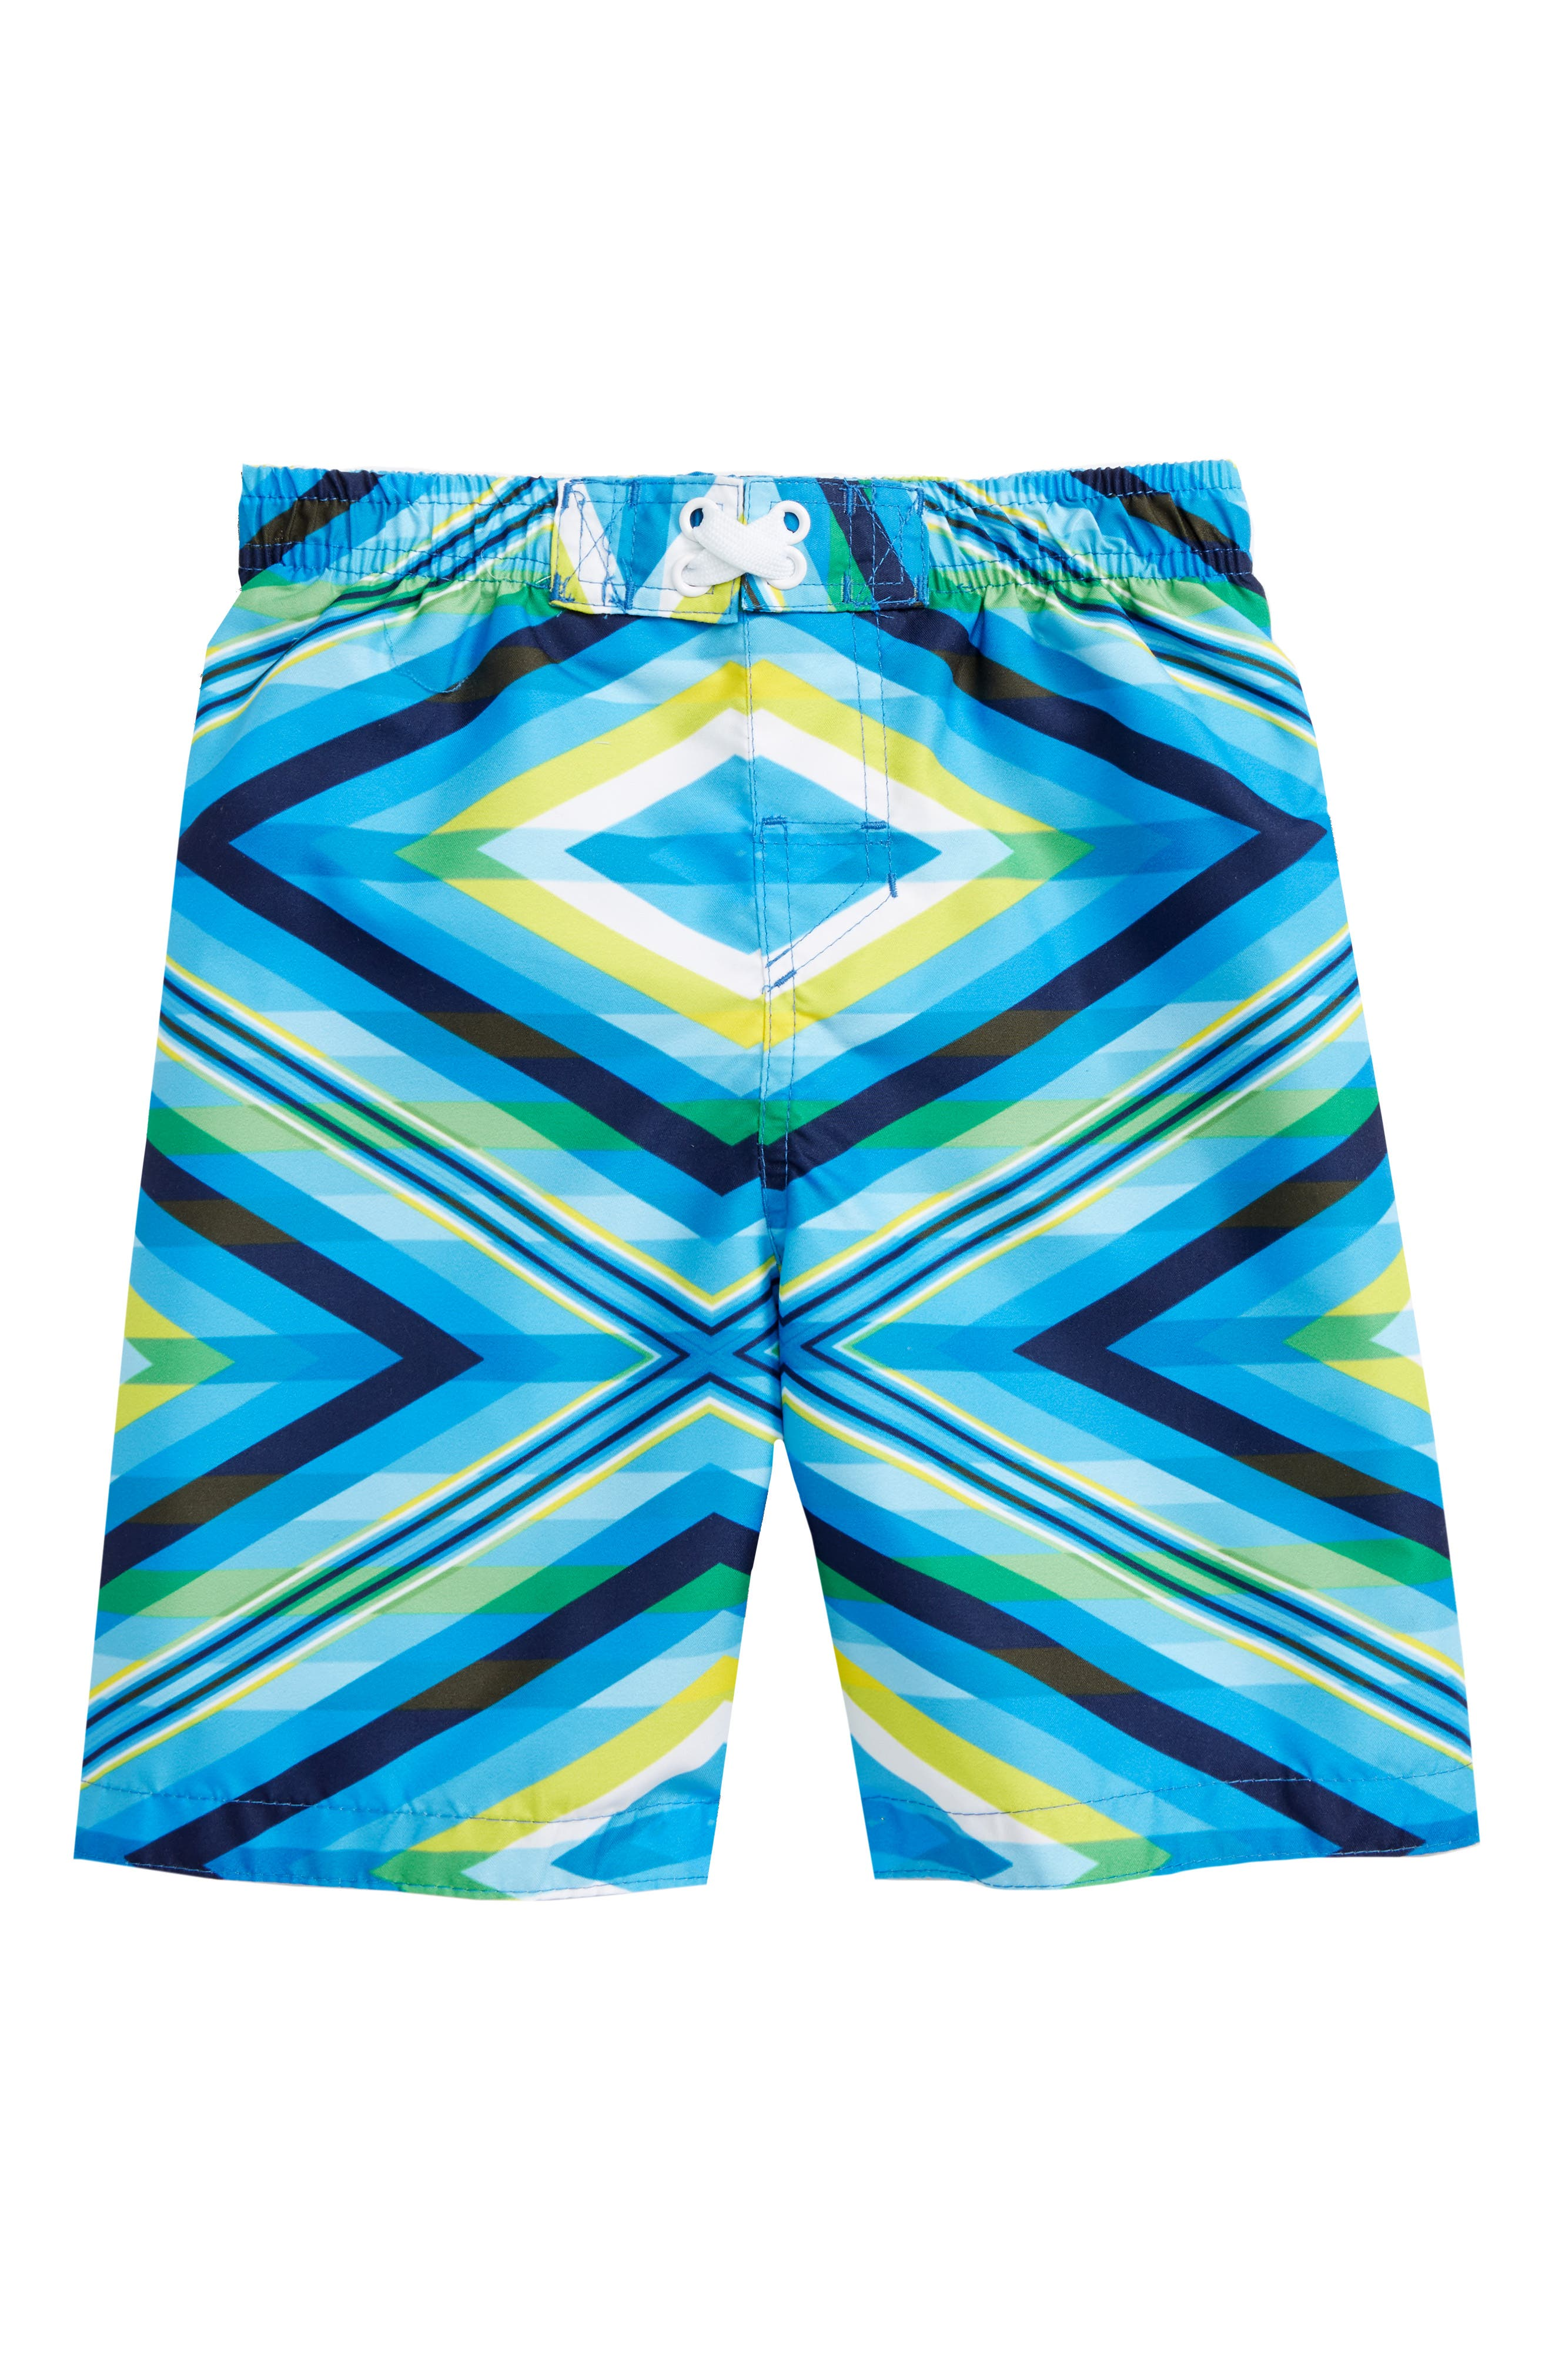 Geo Mirage Swim Trunks,                         Main,                         color,